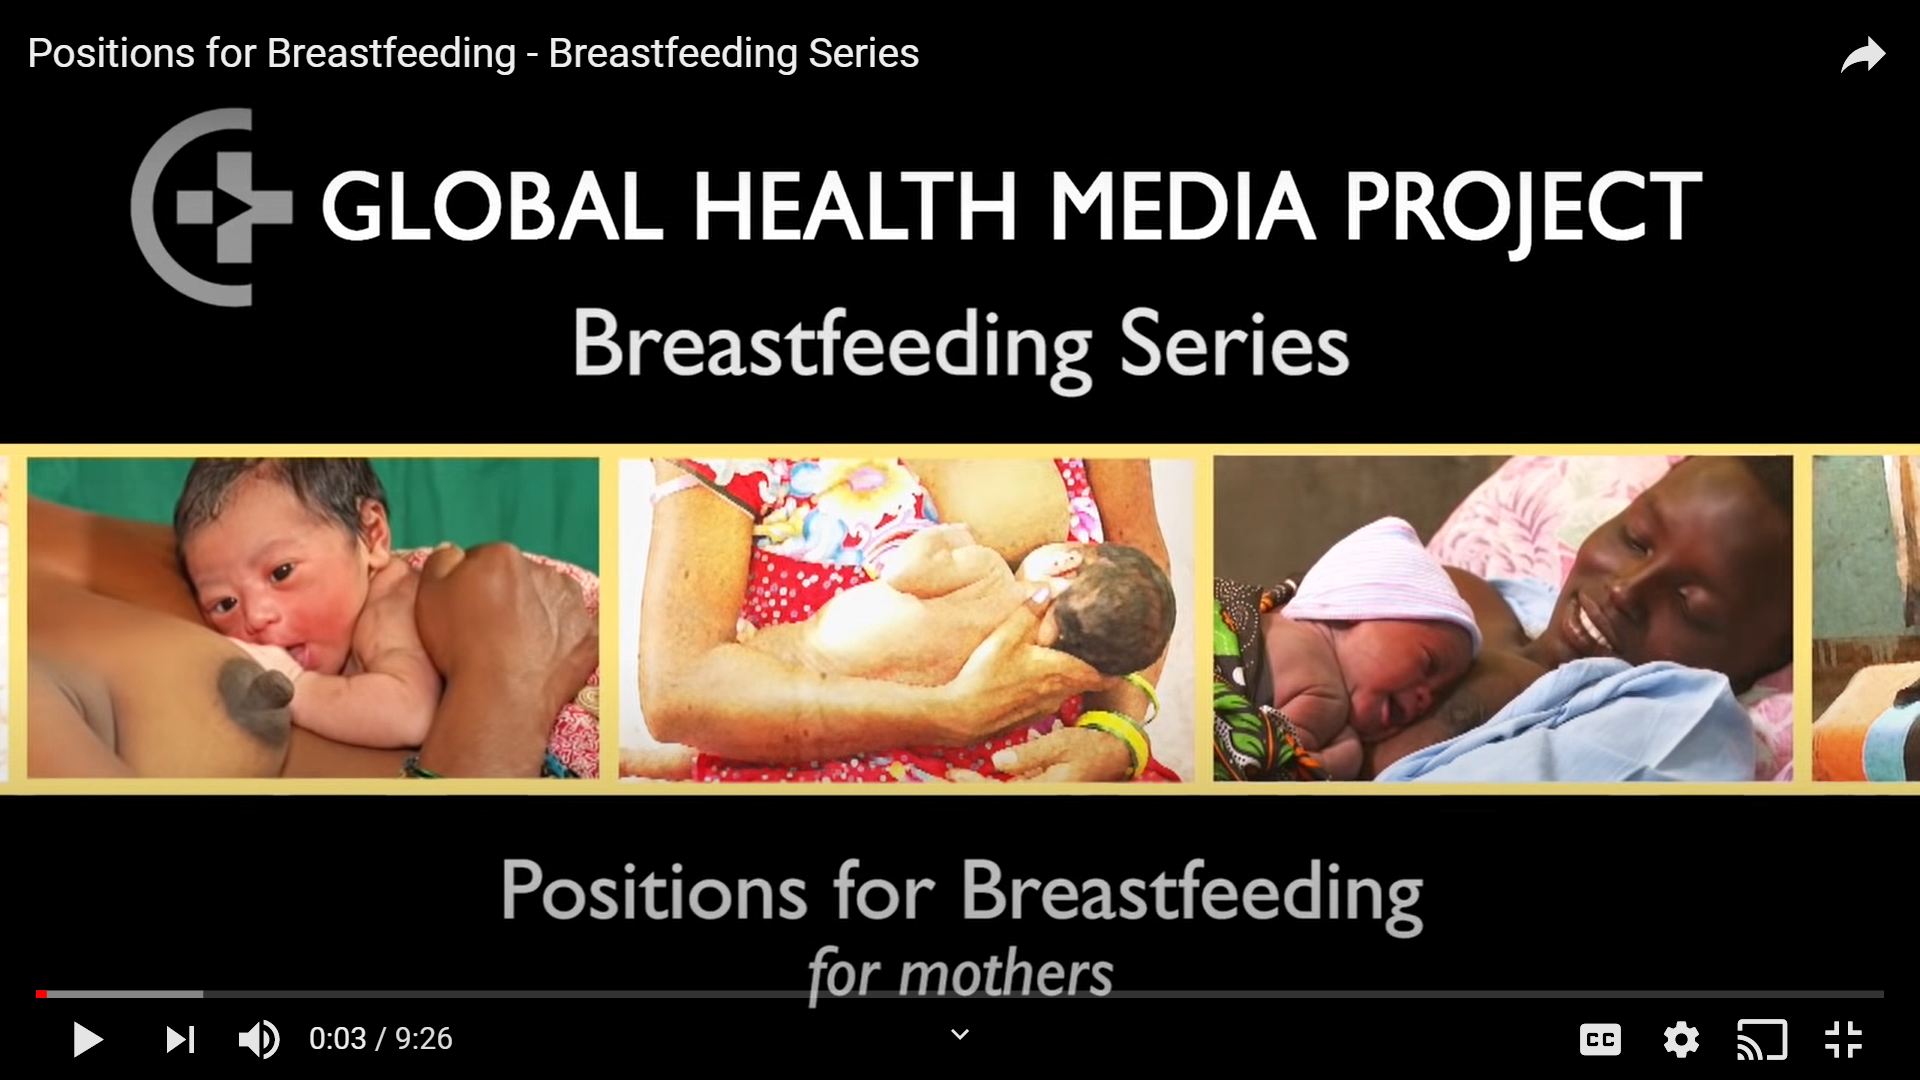 Positions for Breastfeeding (Global Health Media Project)